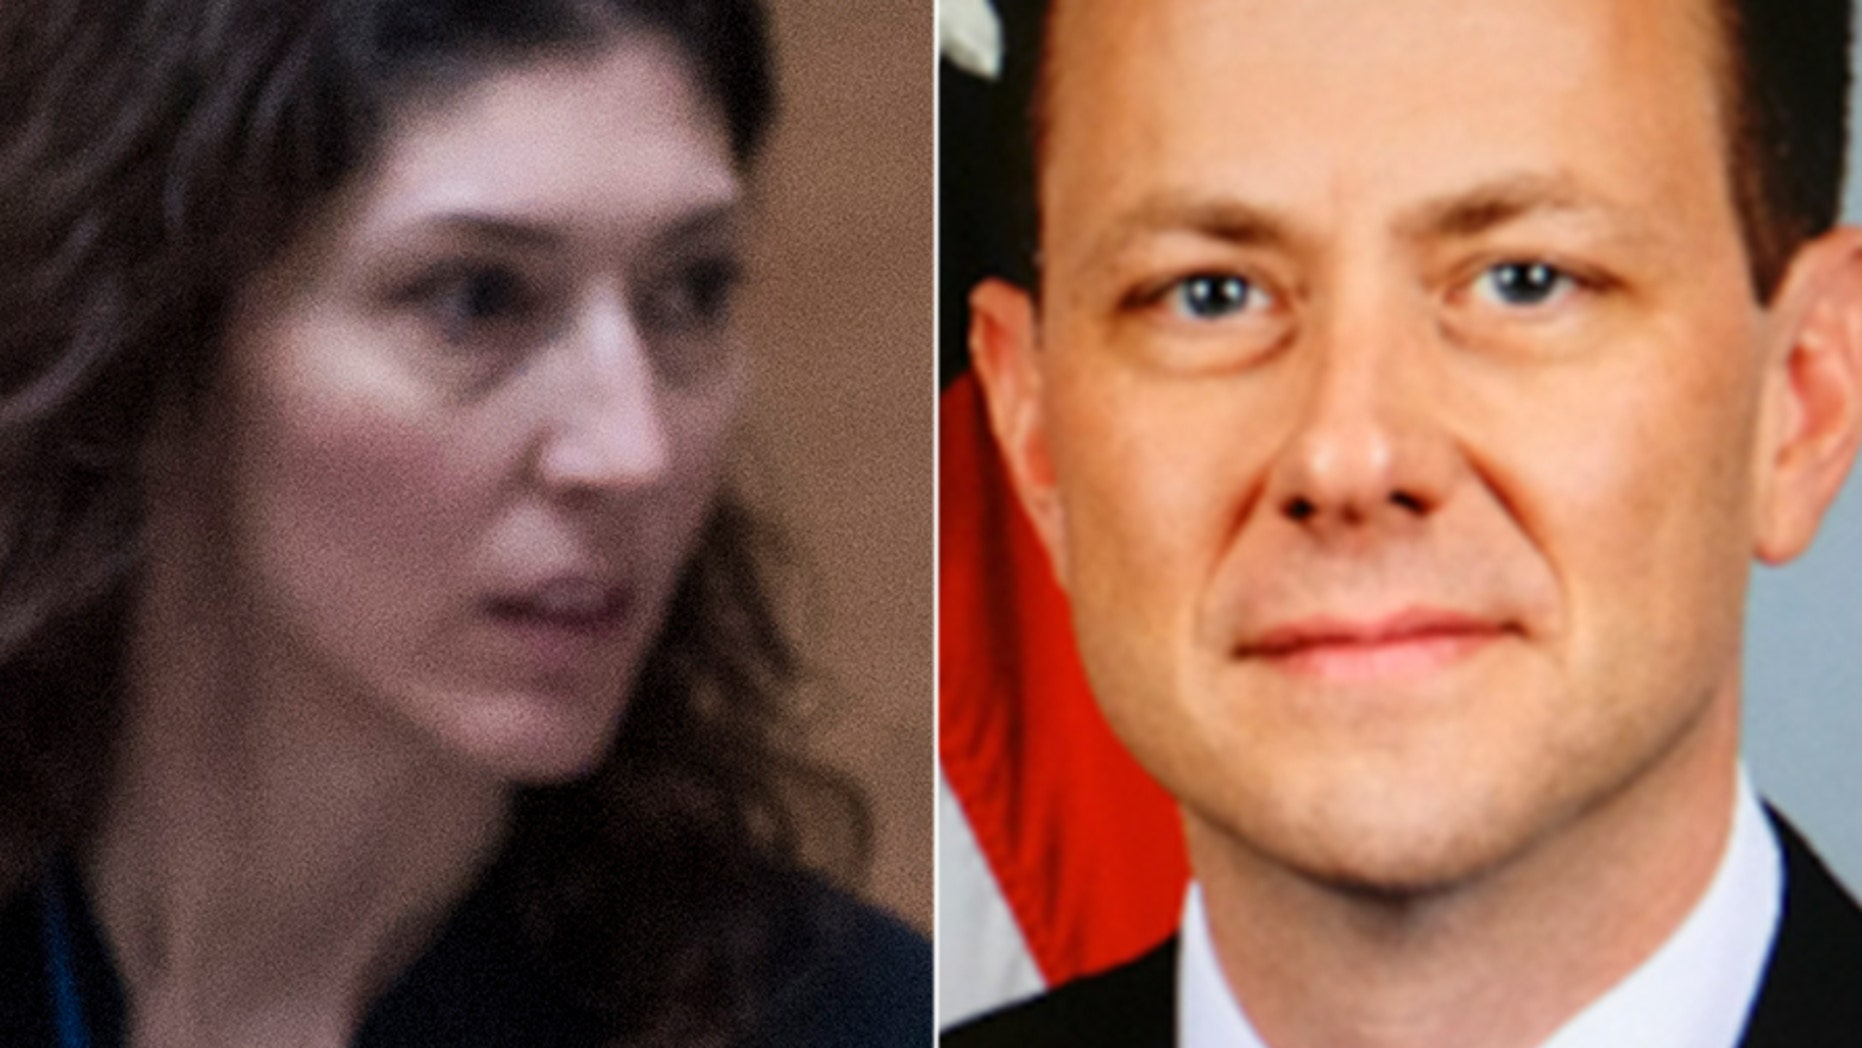 FBI Assistant General Counsel Lisa Page & Deputy Assistant Director of the Federal Bureau of Investigation Peter Strzok